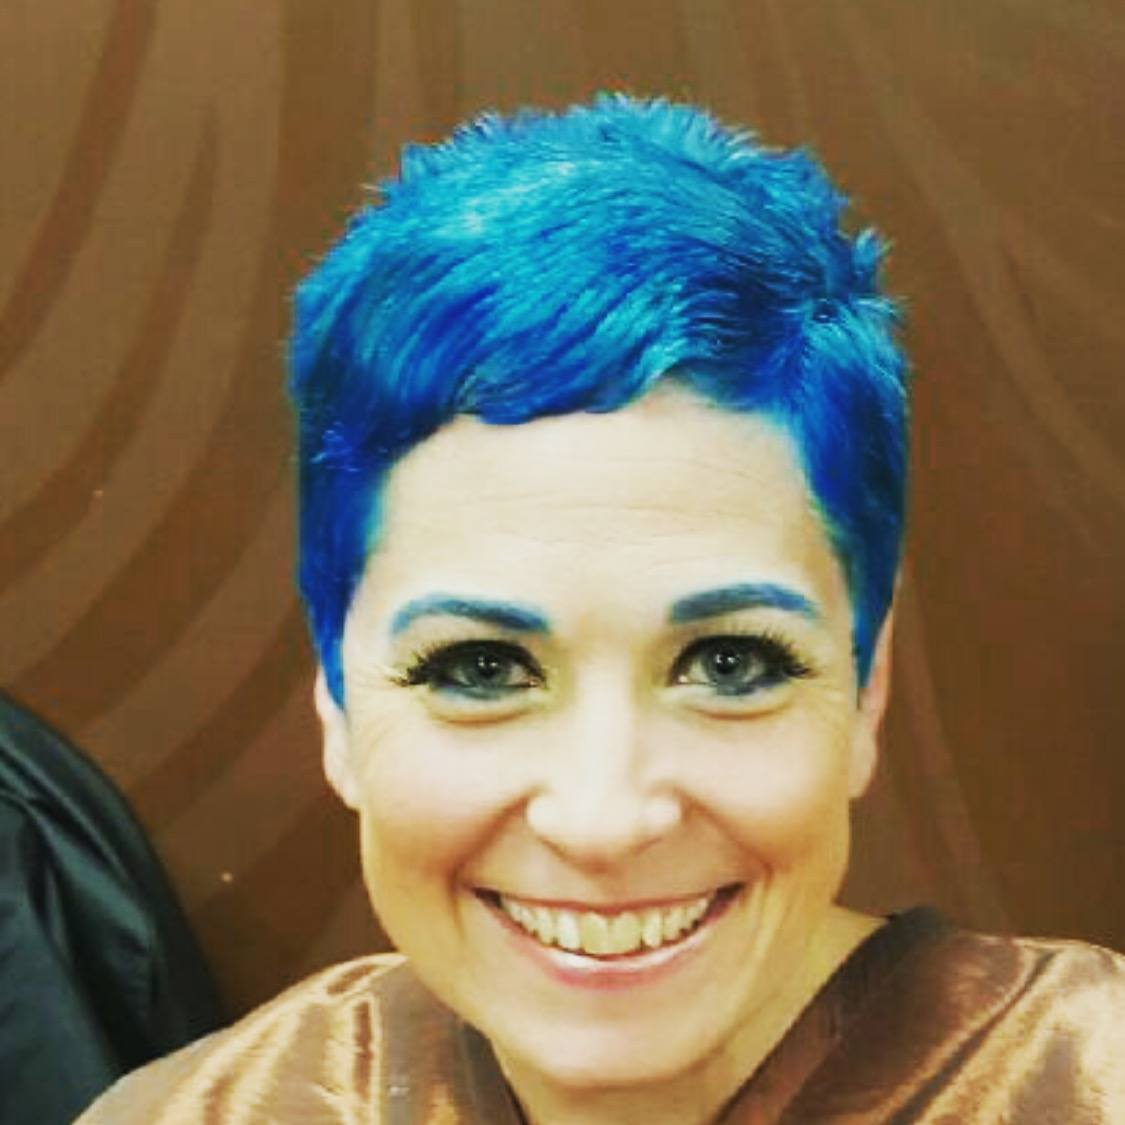 Living life to the fullest: I colored my hair blue!